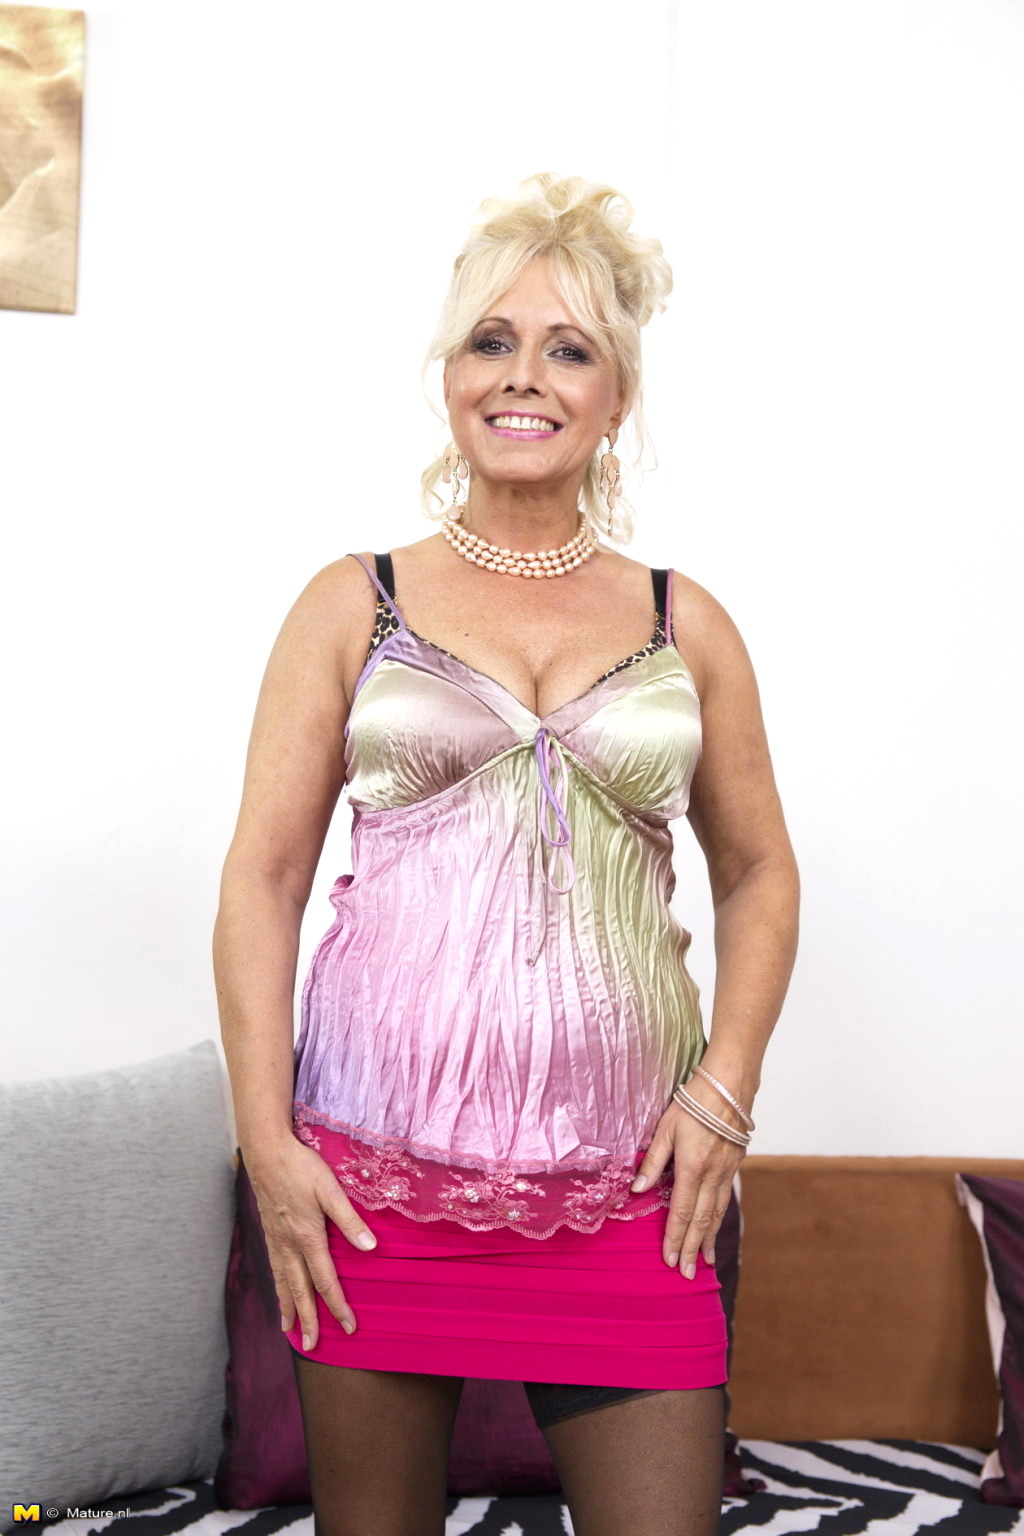 Mature Babe Gallery 22